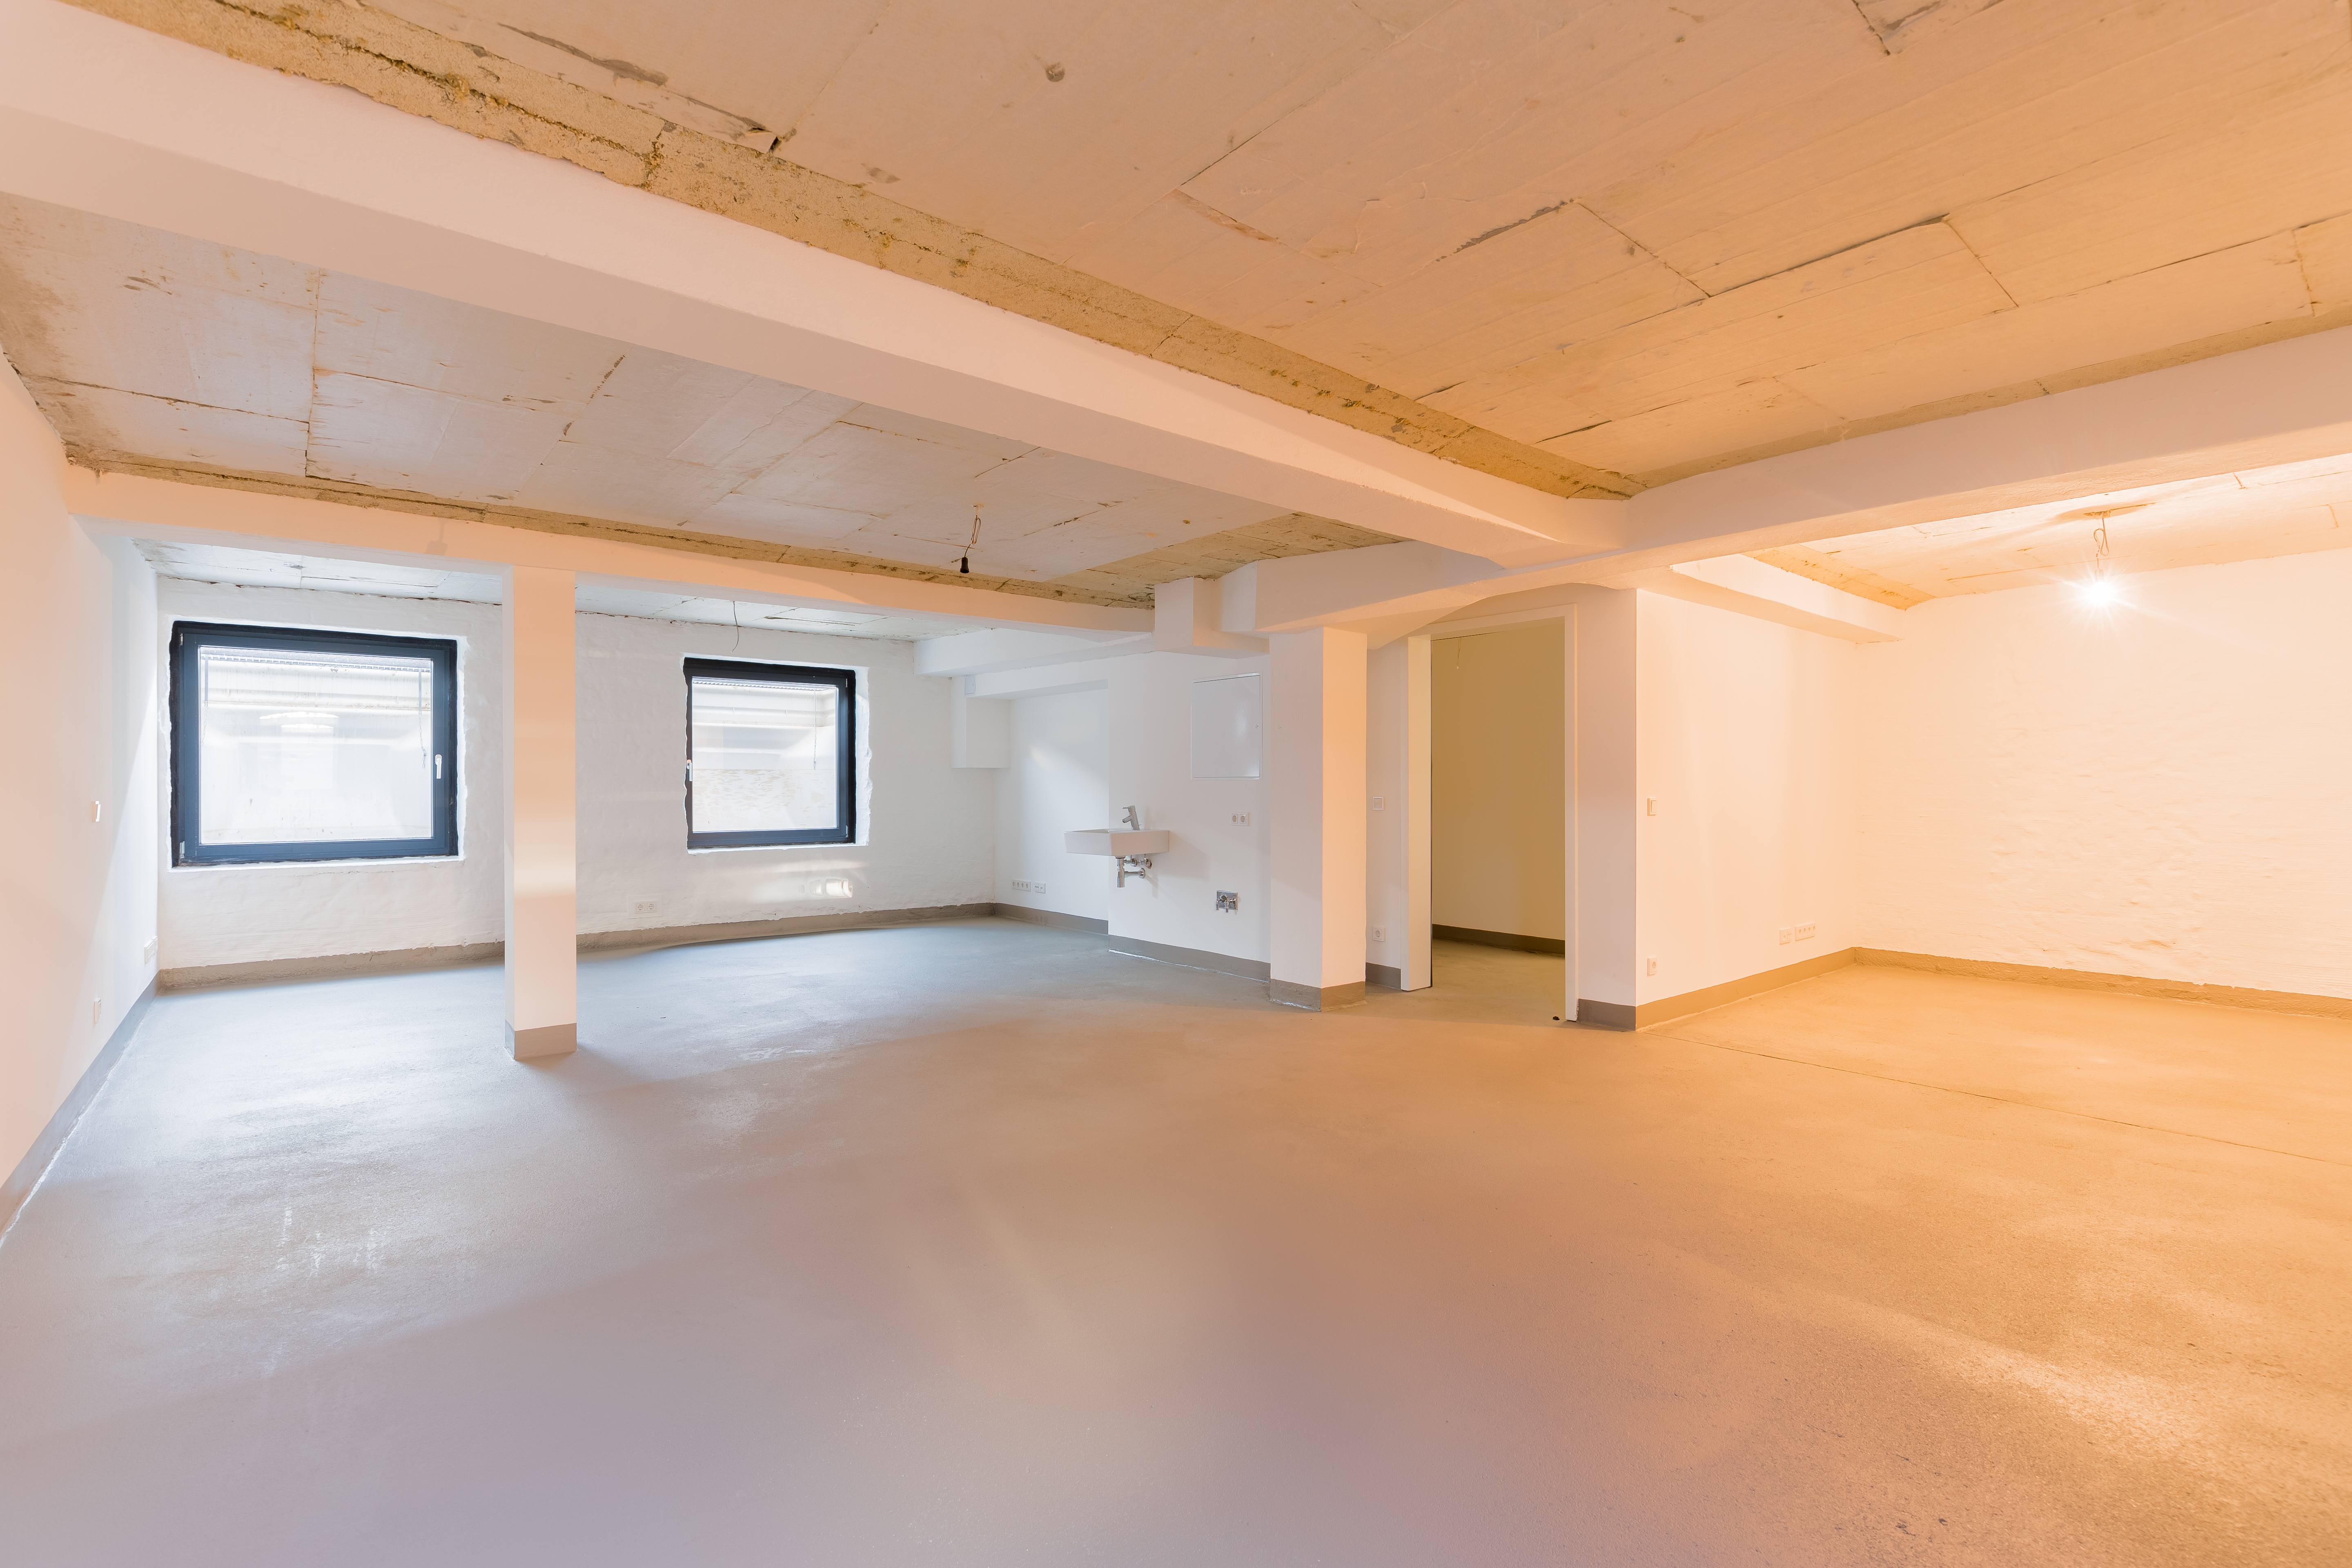 Why Is the Basement Leaking From the Floor? | Hunker